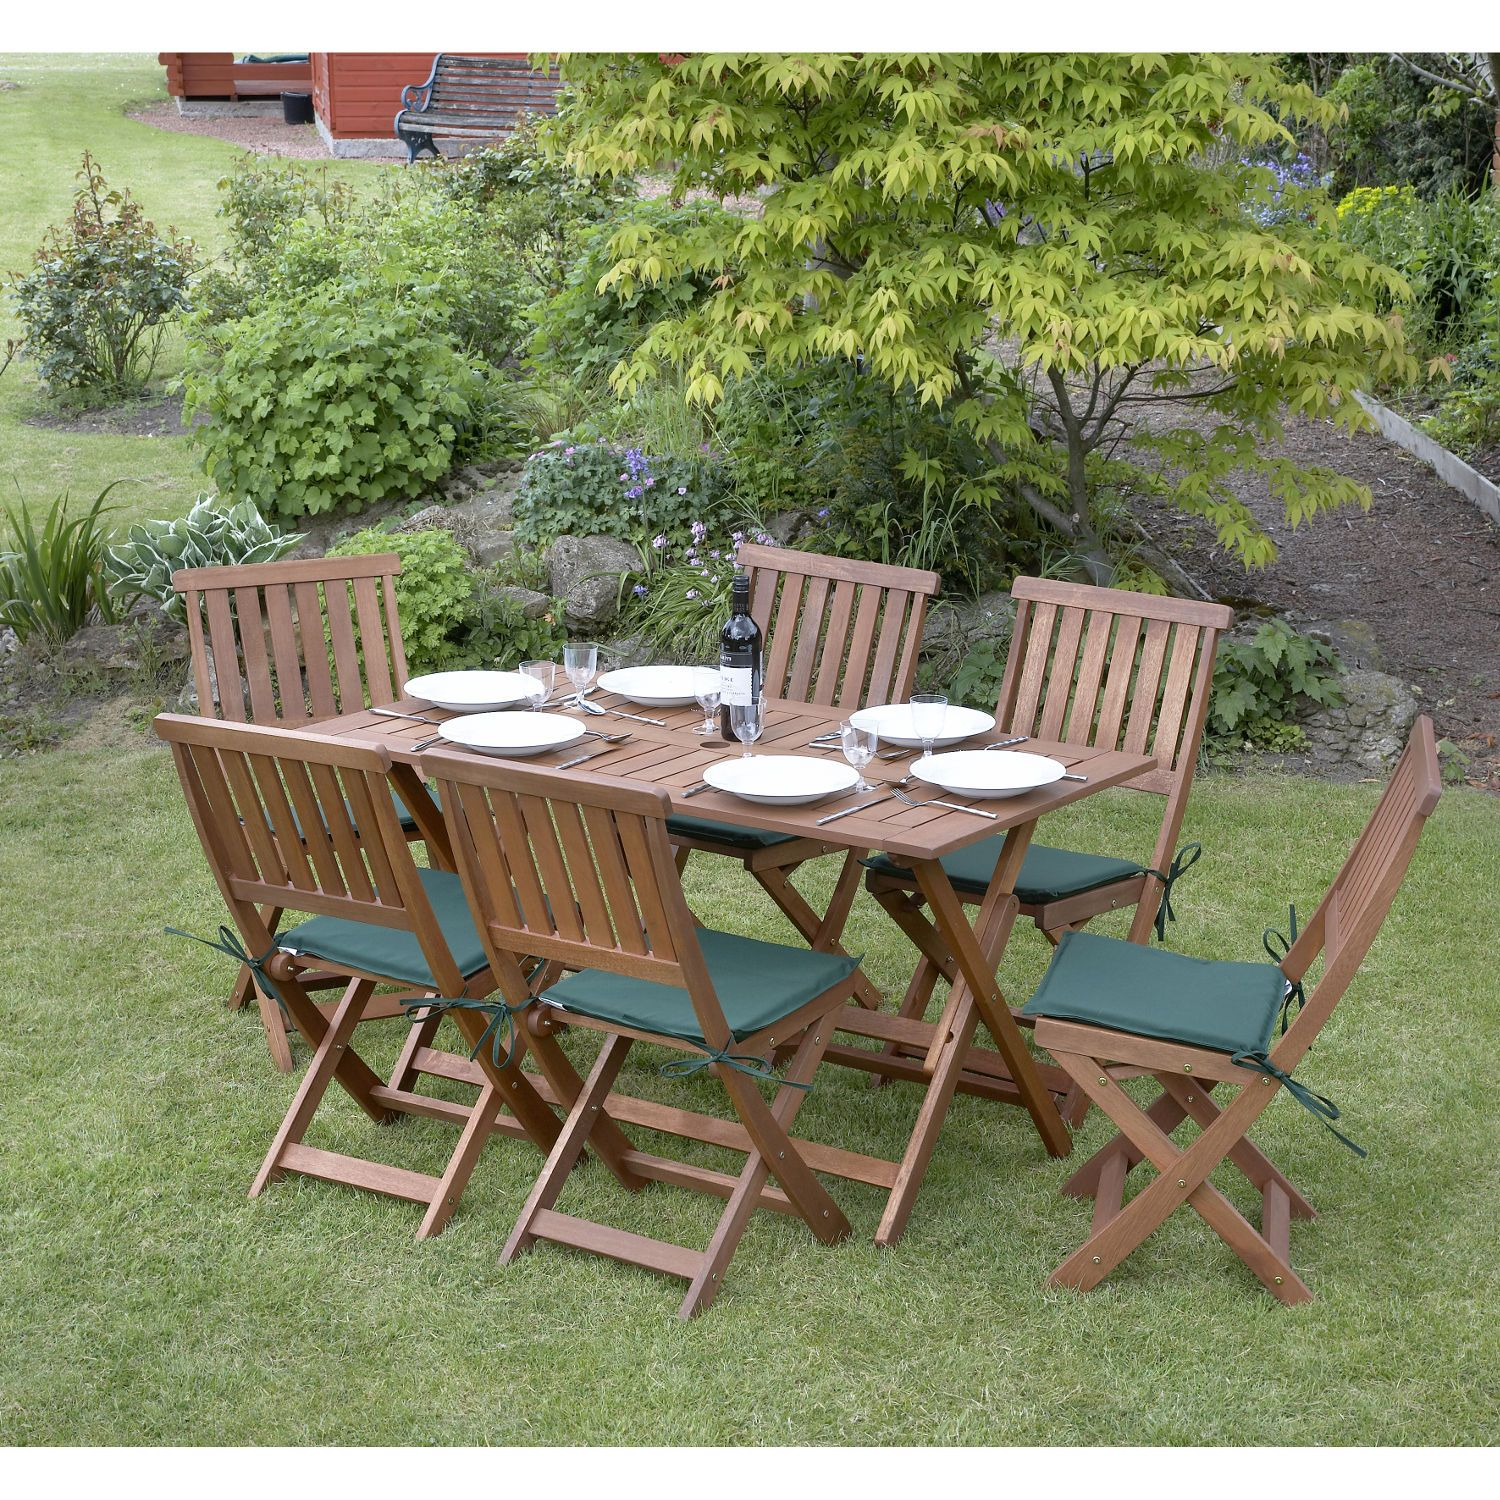 concord 6 seater folding garden set the uks no 1 garden furniture store